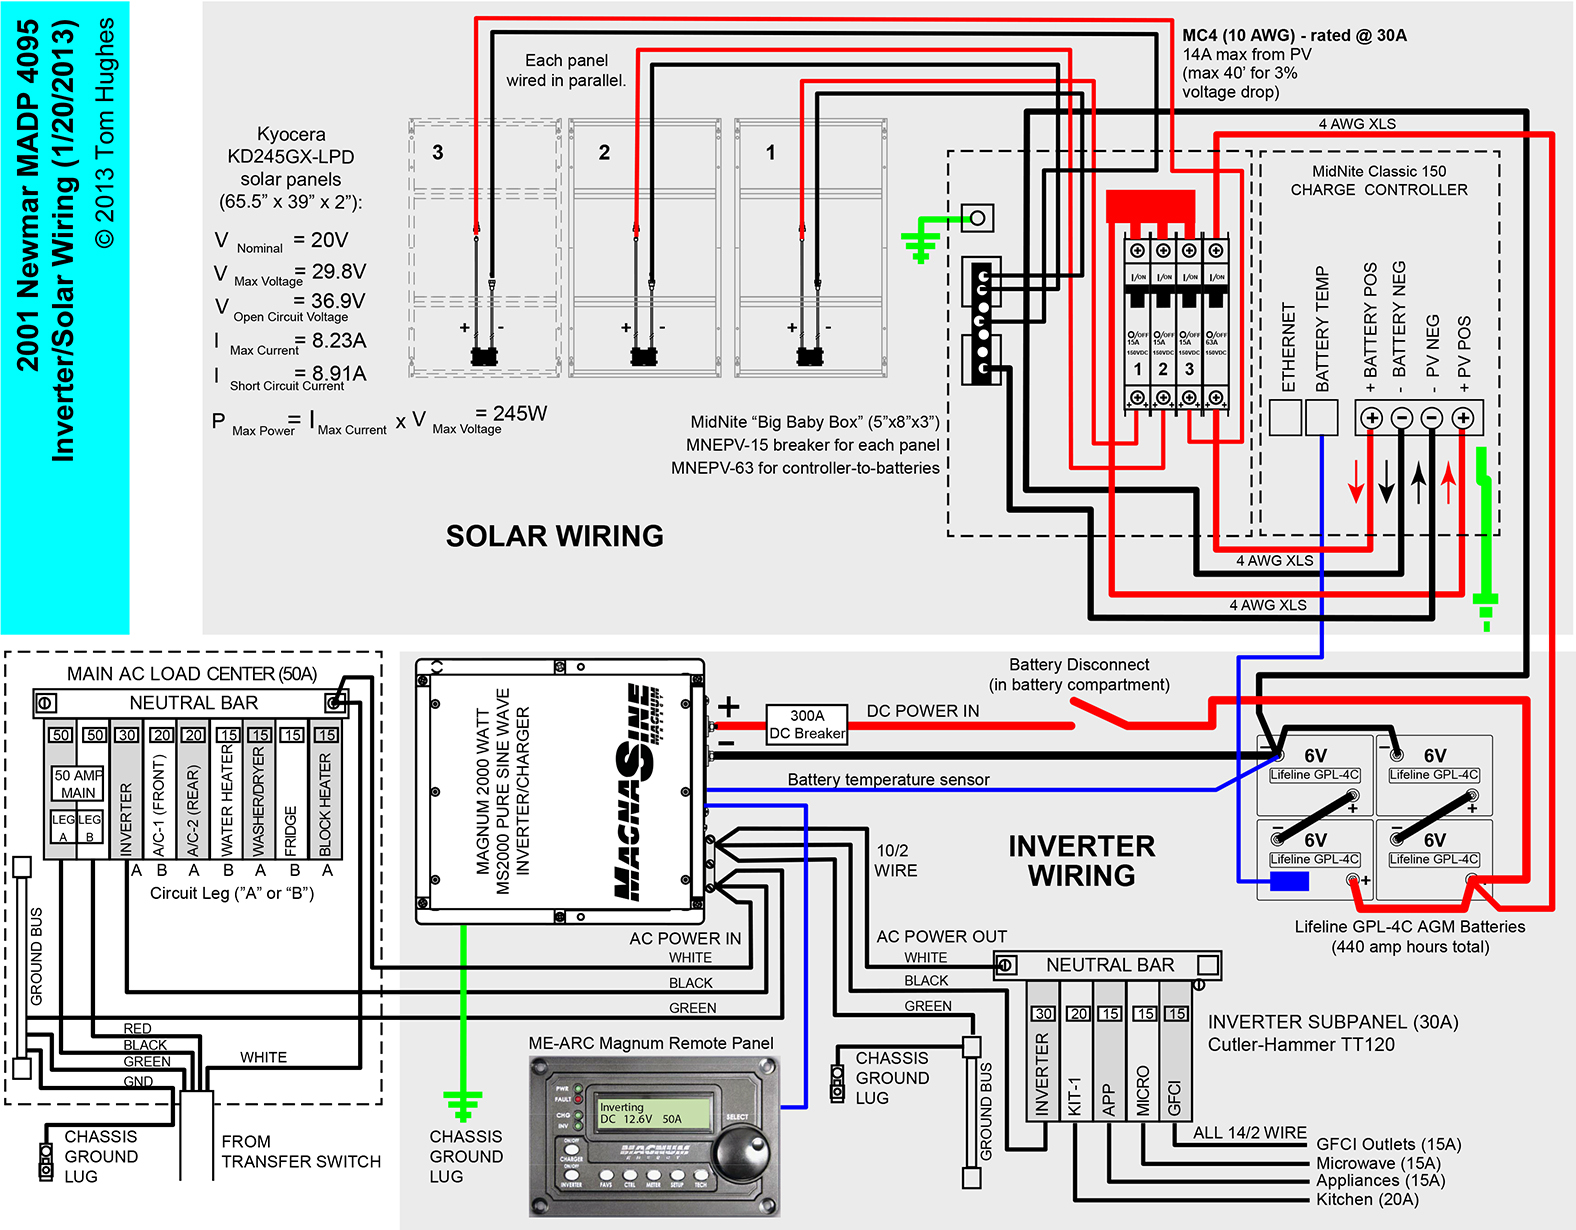 typical rv converter wiring diagram find wiring diagram u2022 rh empcom co RV Battery Wiring Diagram RV Converter Wiring Diagram